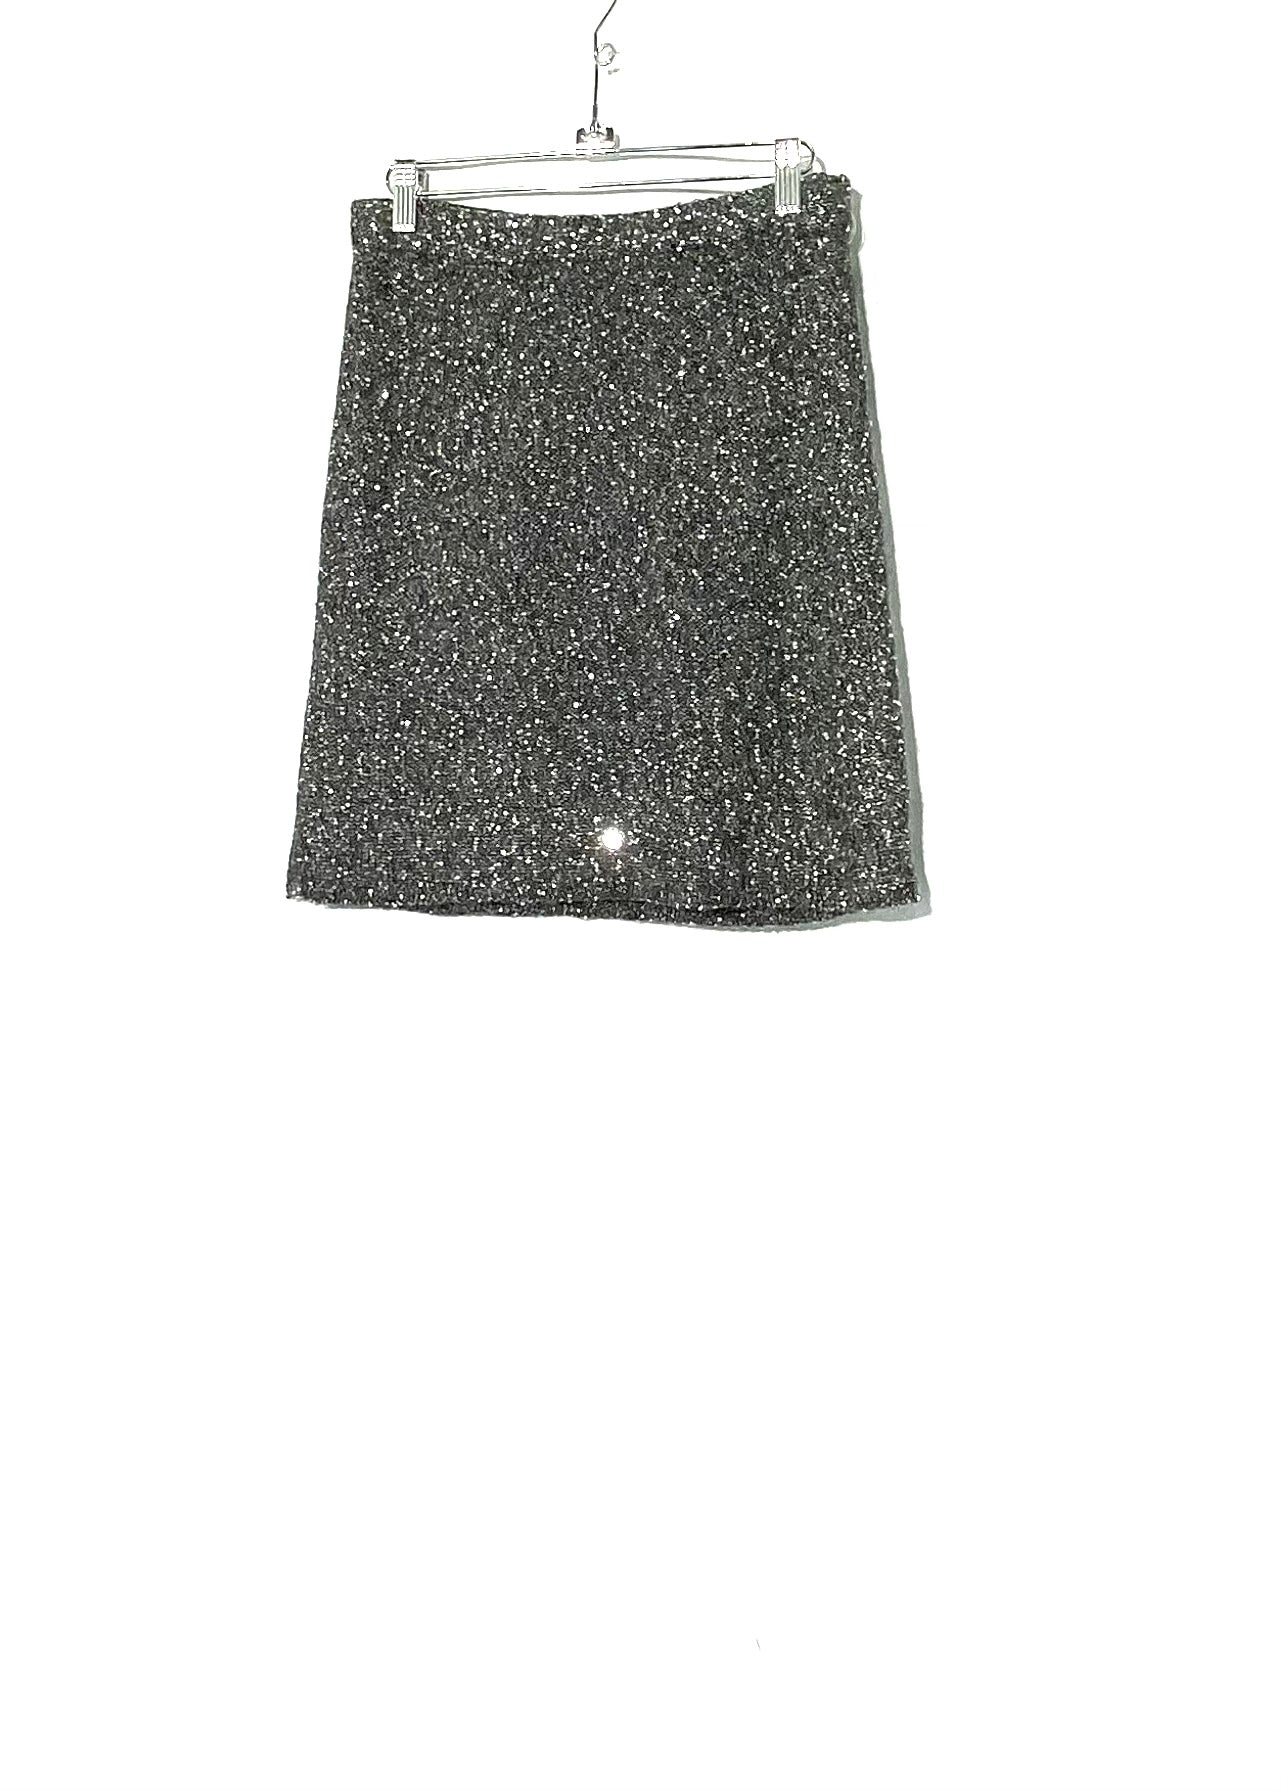 Primary Photo - BRAND: GARNET HILL <BR>STYLE: SKIRT <BR>COLOR: GREY SPARKLY SEQUIN<BR>SIZE: S <BR>SKU: 262-26275-71340<BR>ELASTIC WAIST<BR>22% WOOL & ALPACA (FUZZINESS)<BR>LINING 14% SPANDEX<BR>SPARKLE IN PHOTO (BACK LOOKS SAME)